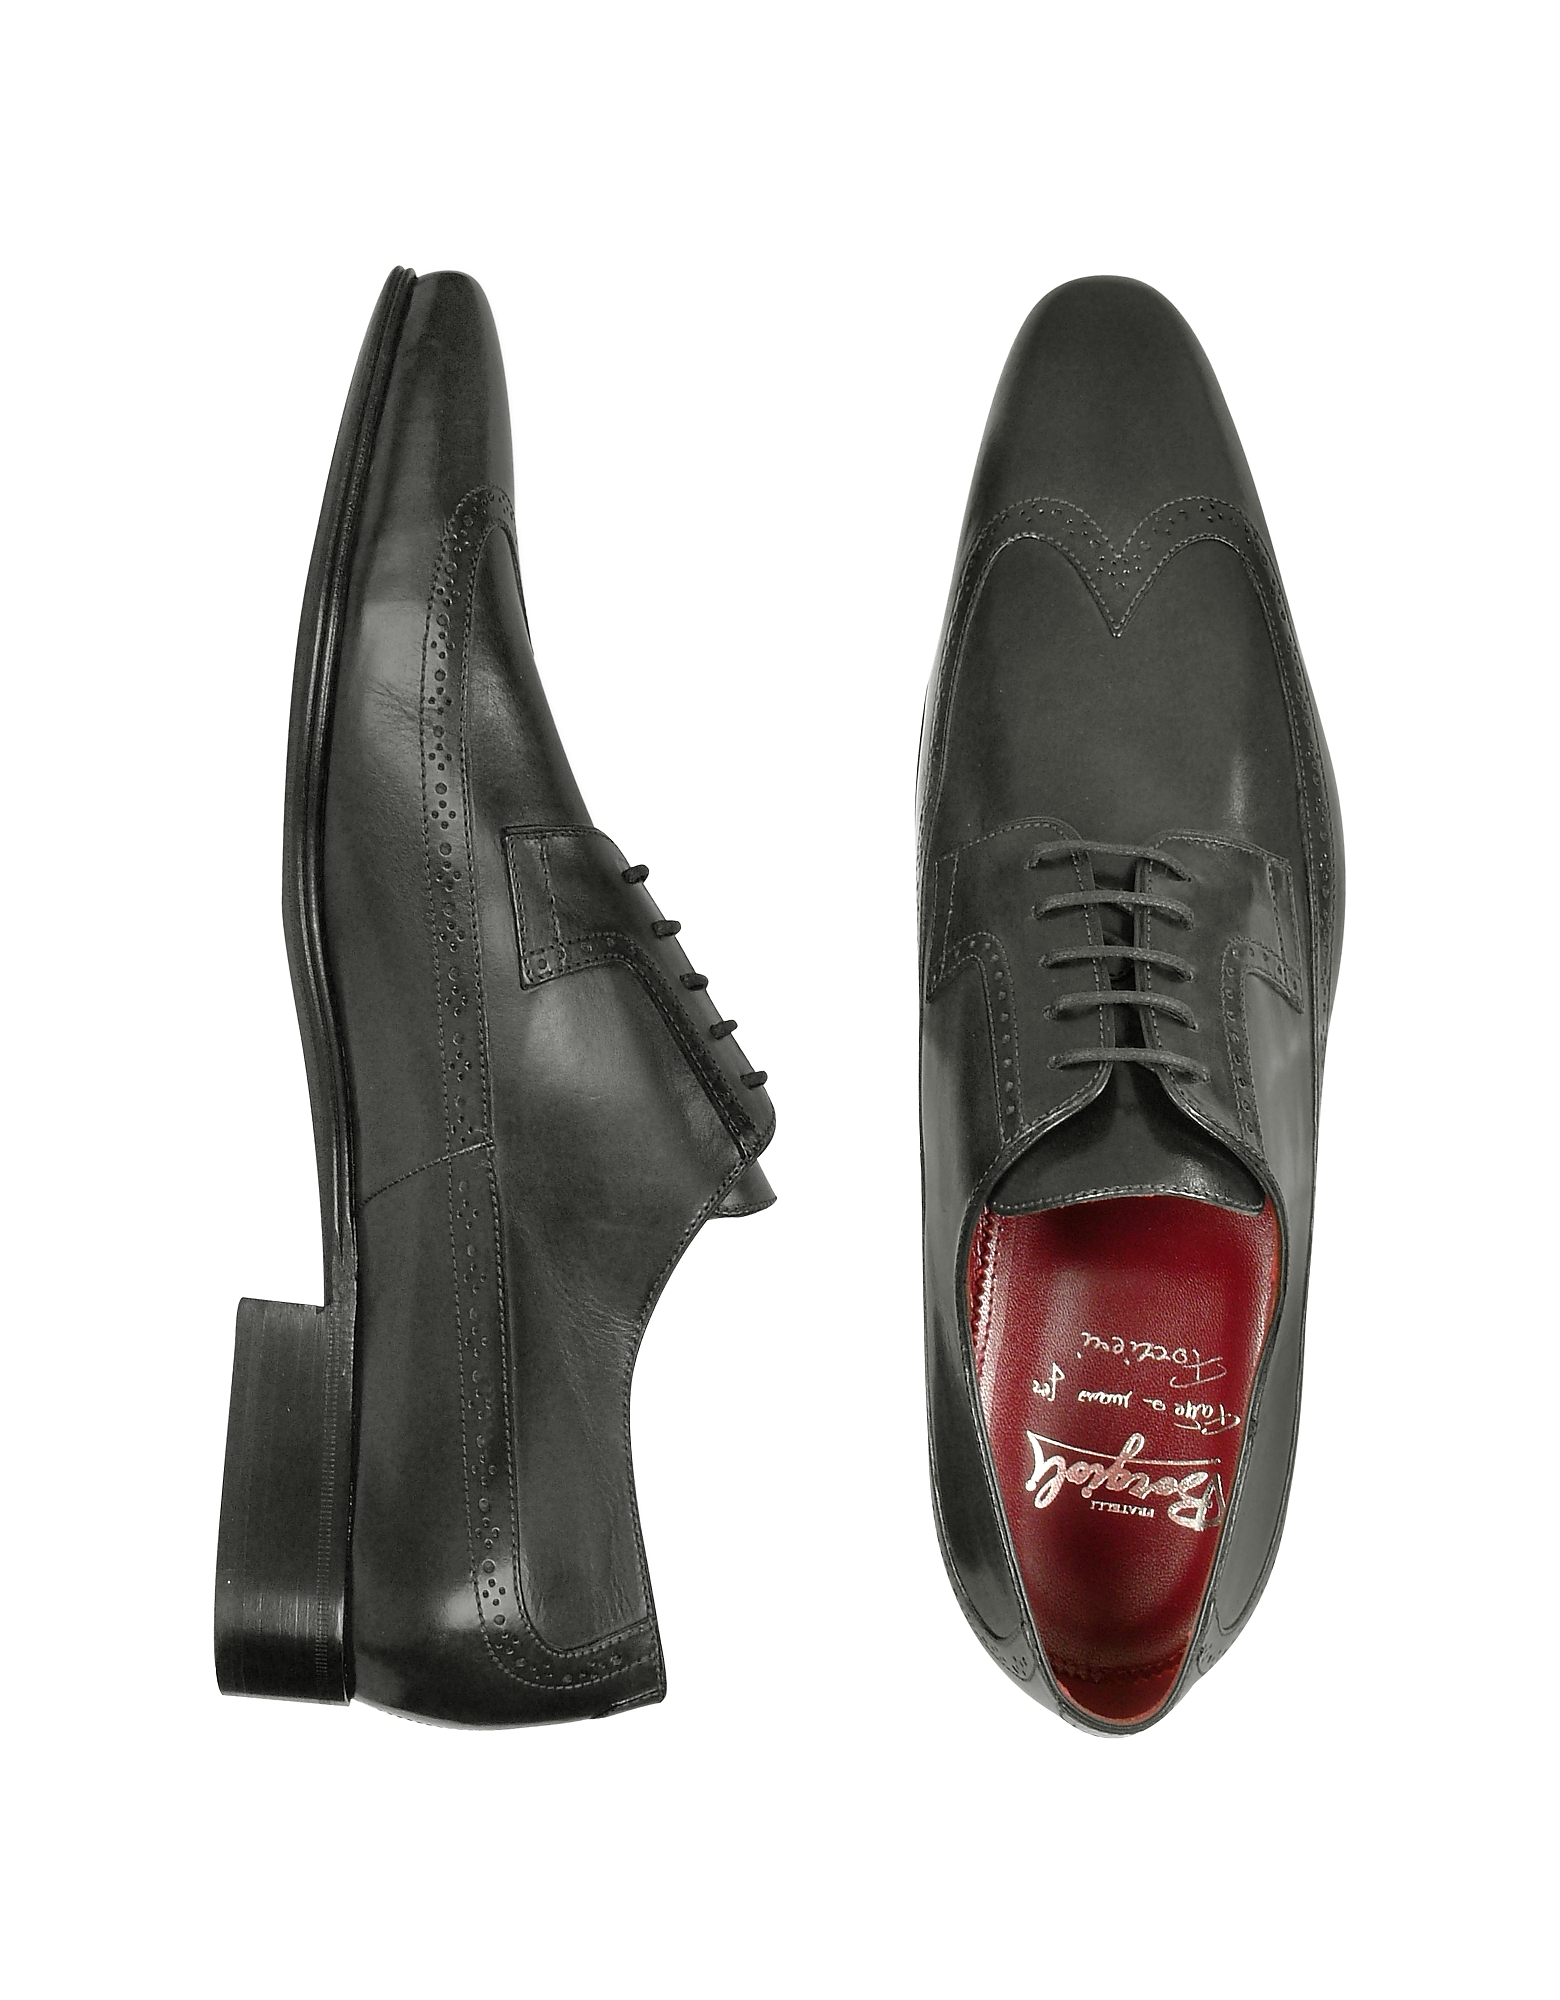 Fratelli Borgioli Shoes, Handmade Black Italian Leather Wingtip Dress Shoes